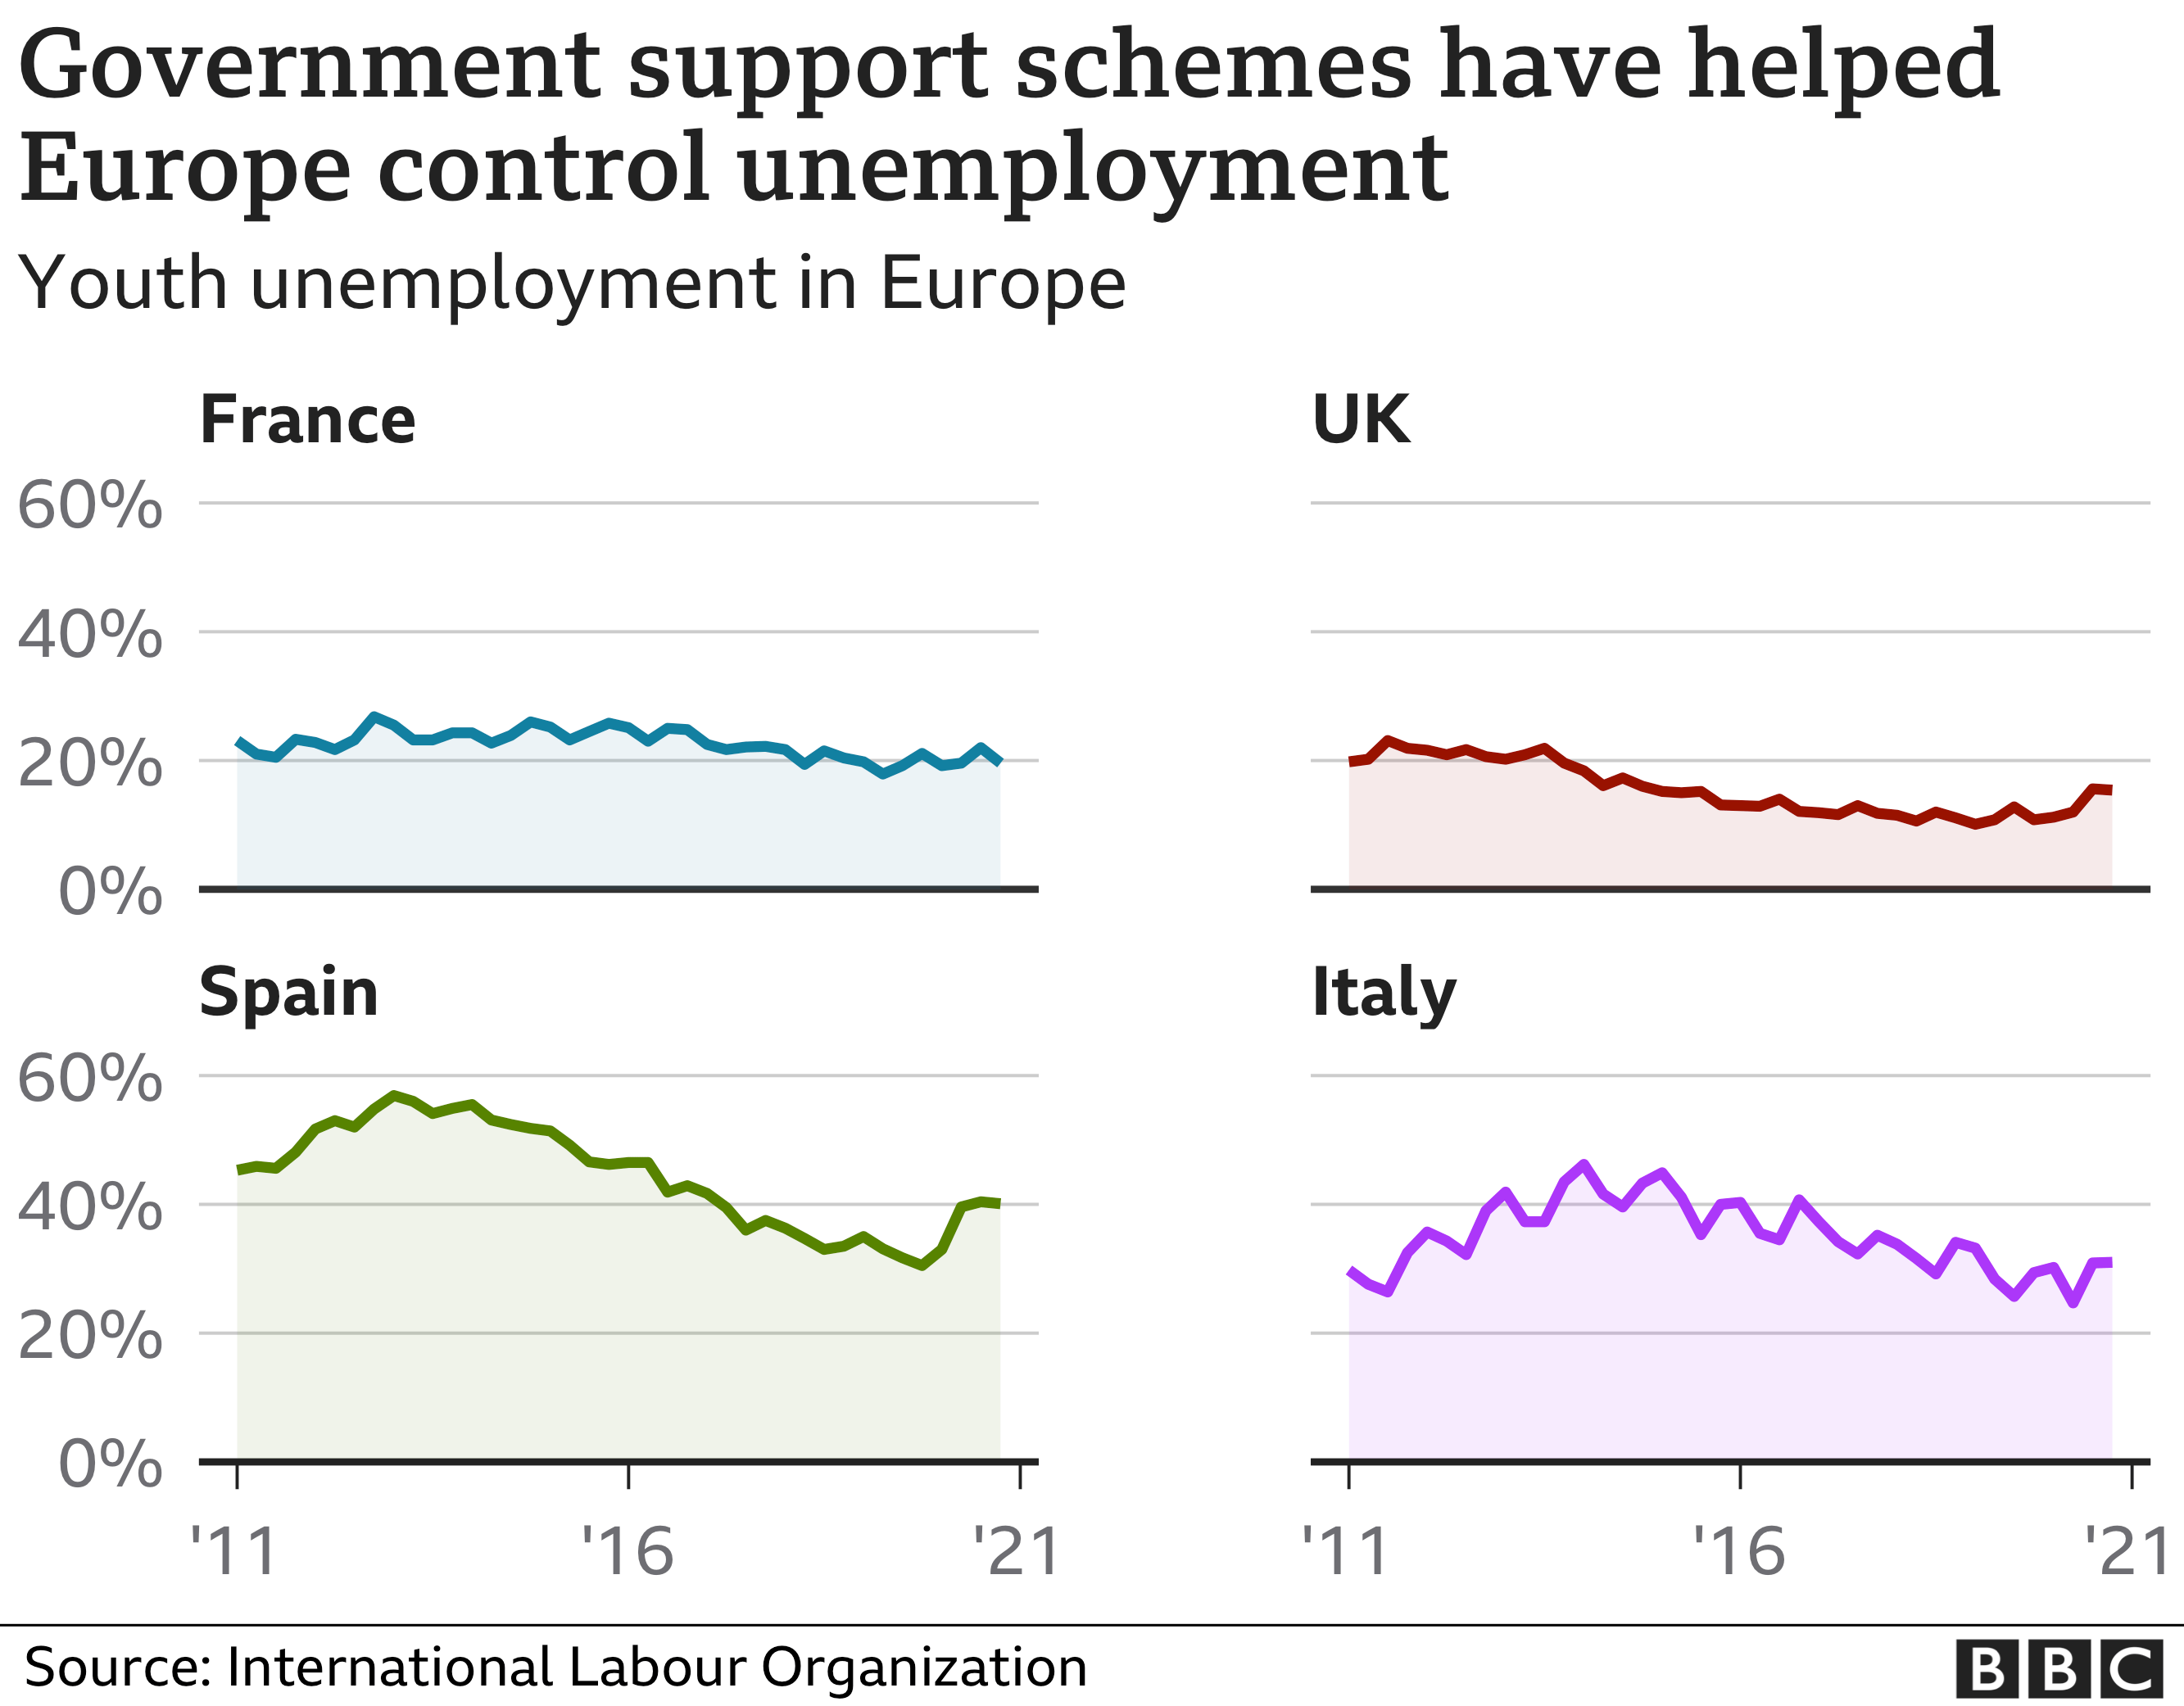 Chart showing youth unemployment in France, the UK, Spain and Italy